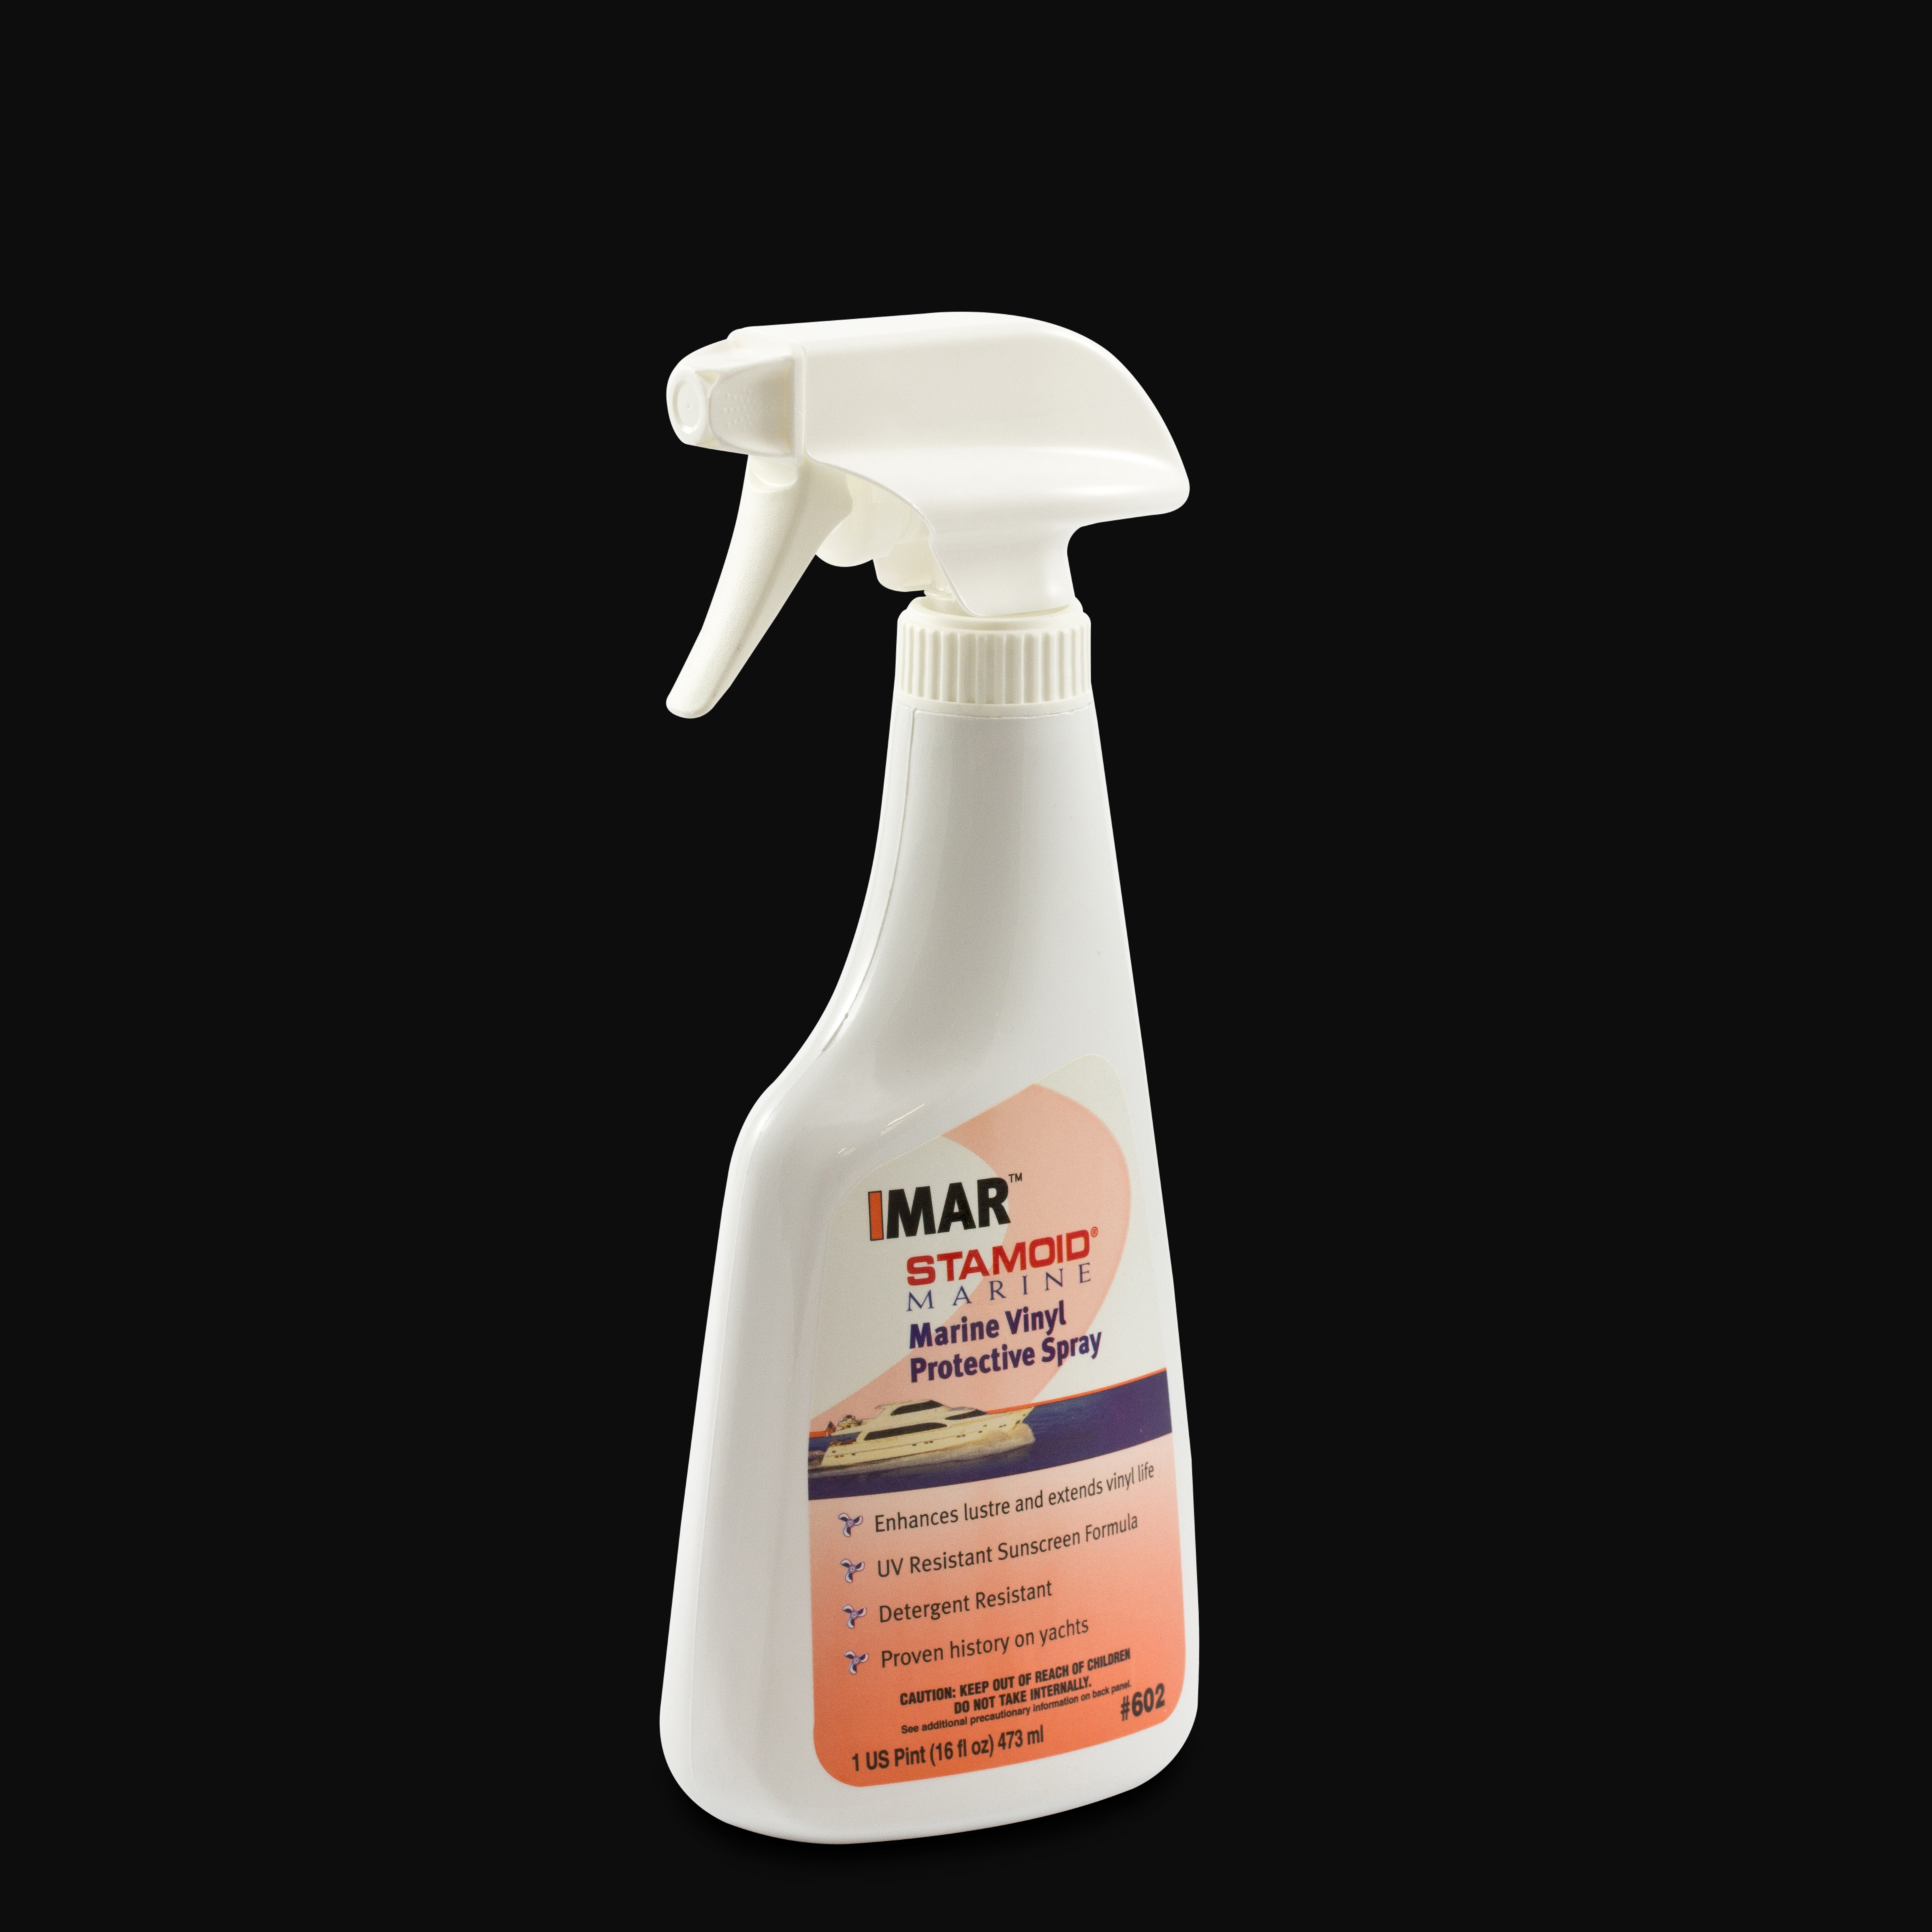 IMAR Stamoid Marine Vinyl Protective Spray #602 16-oz Spray Bottle